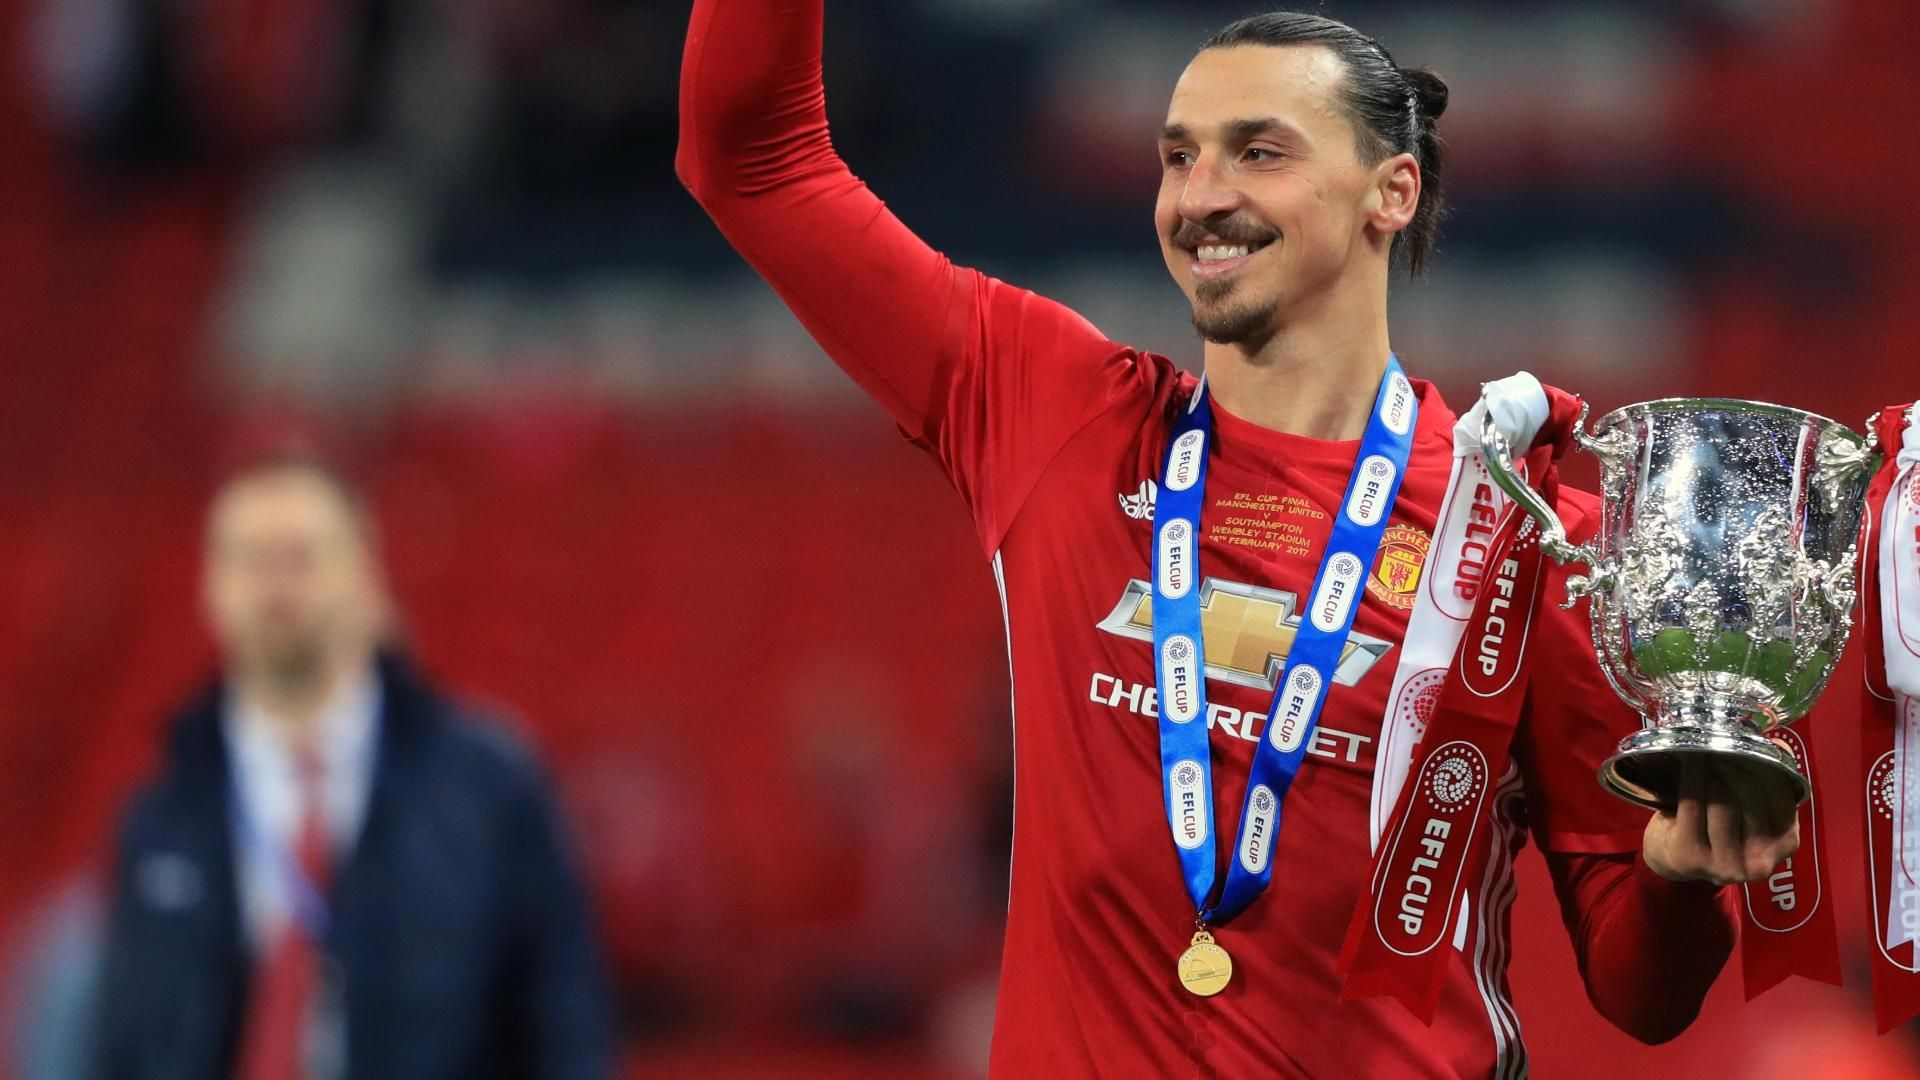 https://secure.espncdn.com/combiner/i?img=/media/motion/2018/0322/int_180322_fc_zlatan_ibrahimovic_in_europe_discuss1345/int_180322_fc_zlatan_ibrahimovic_in_europe_discuss1345.jpg